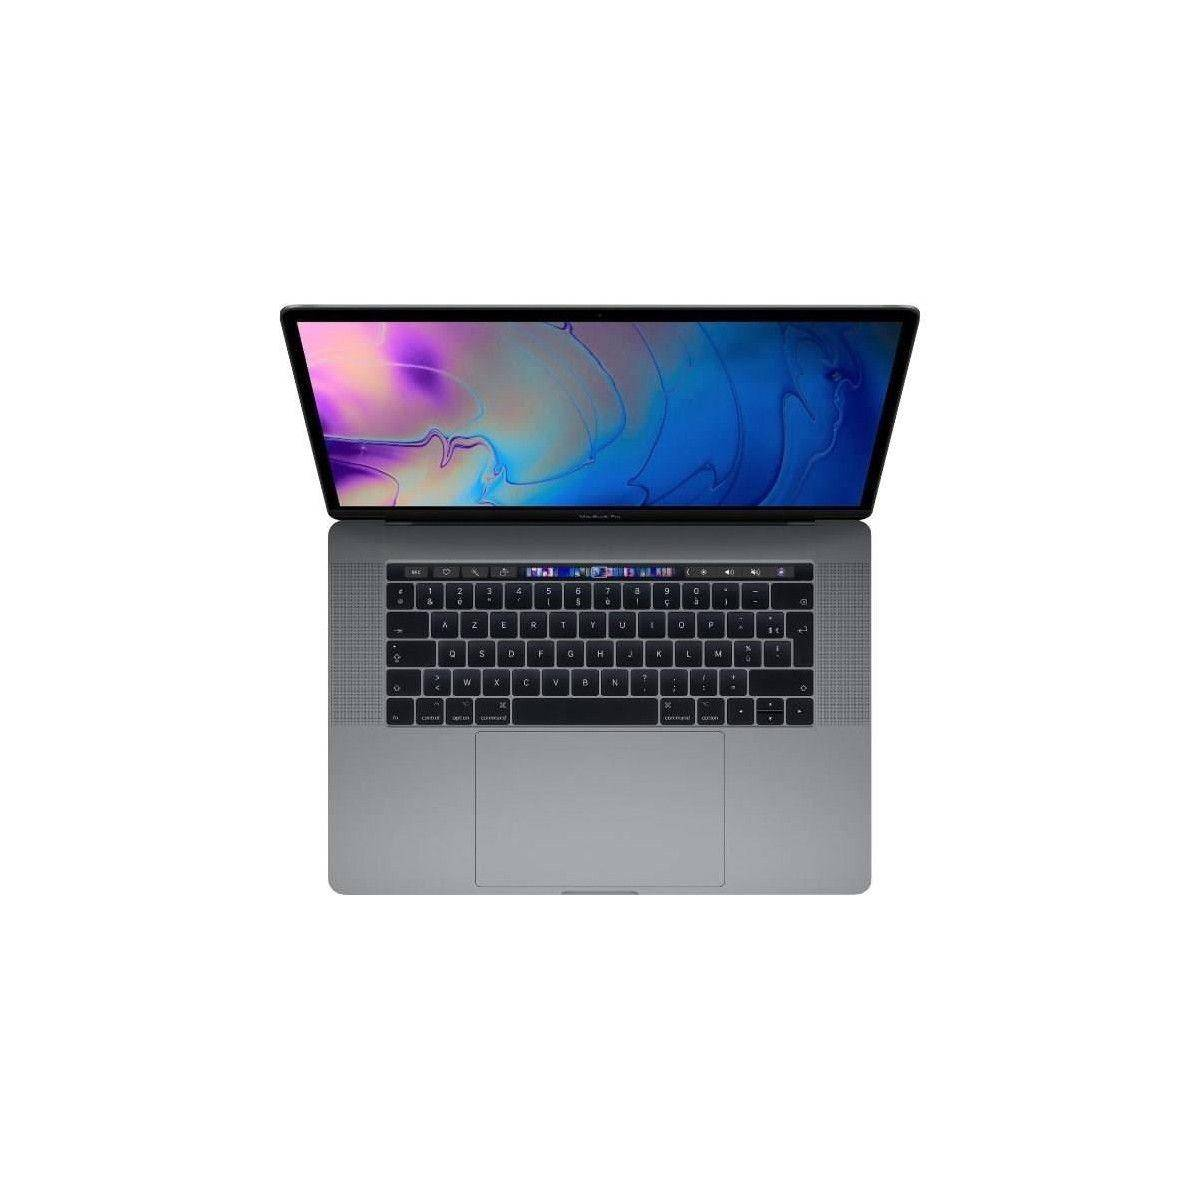 APPLE MacBook Pro MR932FN/A - 15,4 pouces Retina avec Touch Bar - Intel Core i7 - RAM 16Go - Stockage 256Go - Gris Sideral